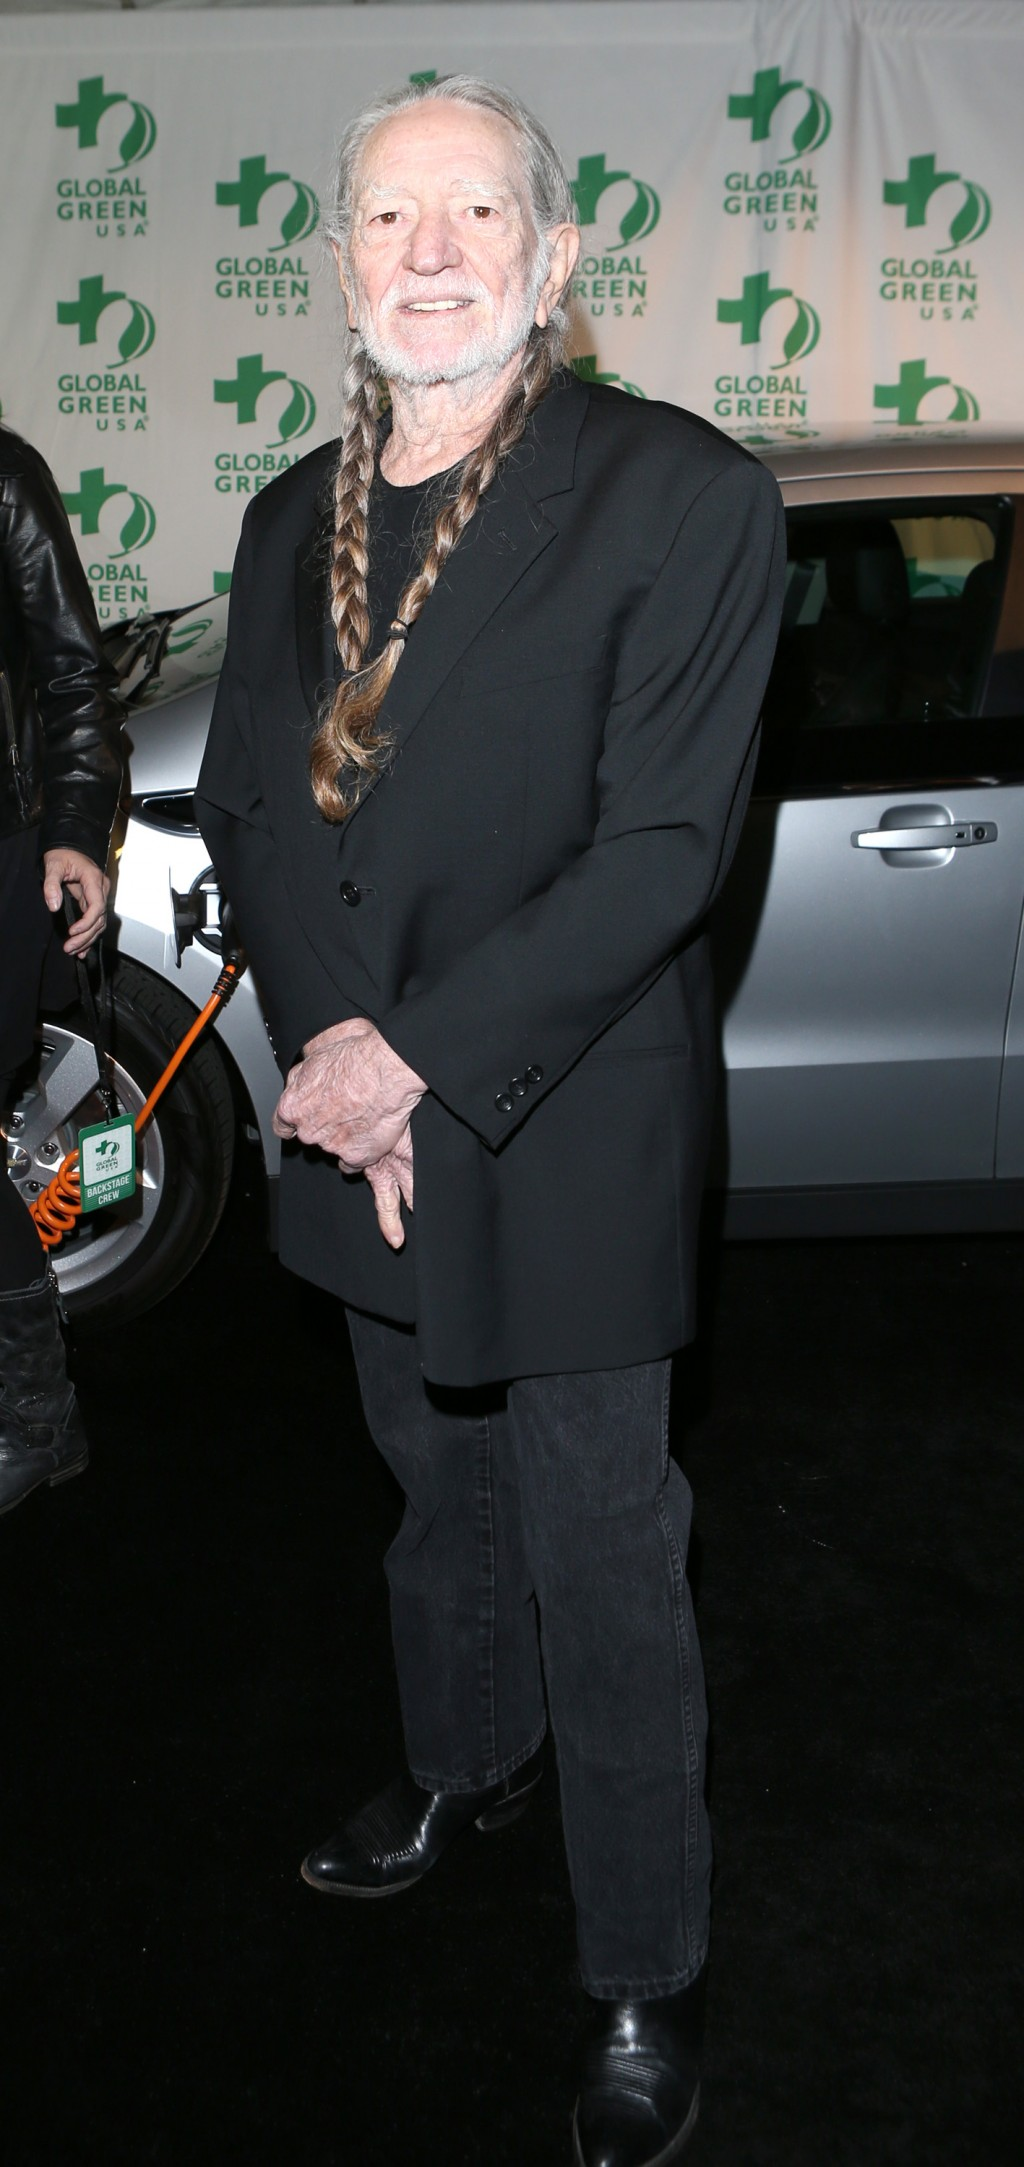 Willie Nelson poses with a Chevy volt at the pre-Oscar event